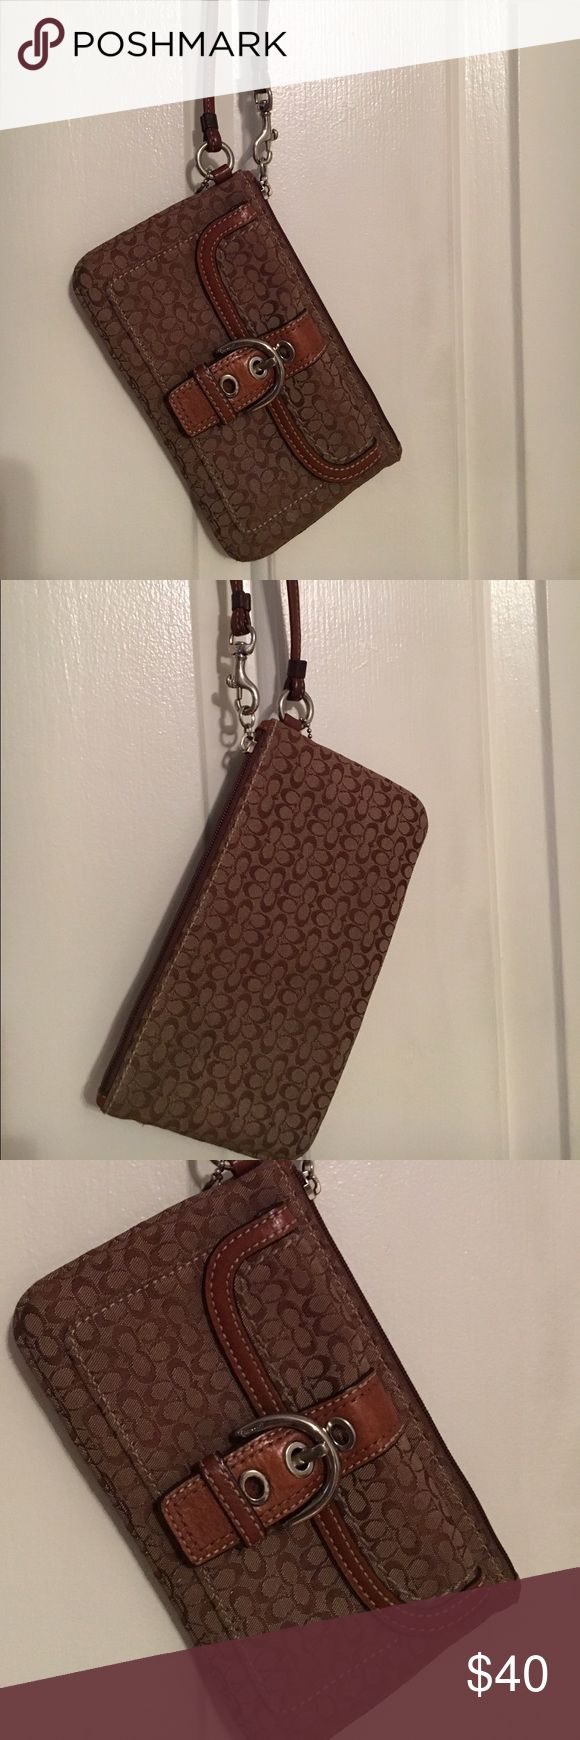 Coach Wristlet Coach wristlet with signature C print. Buckle and small pocket in the front. More storage in the zipper.  Used Coach Bags Wallets